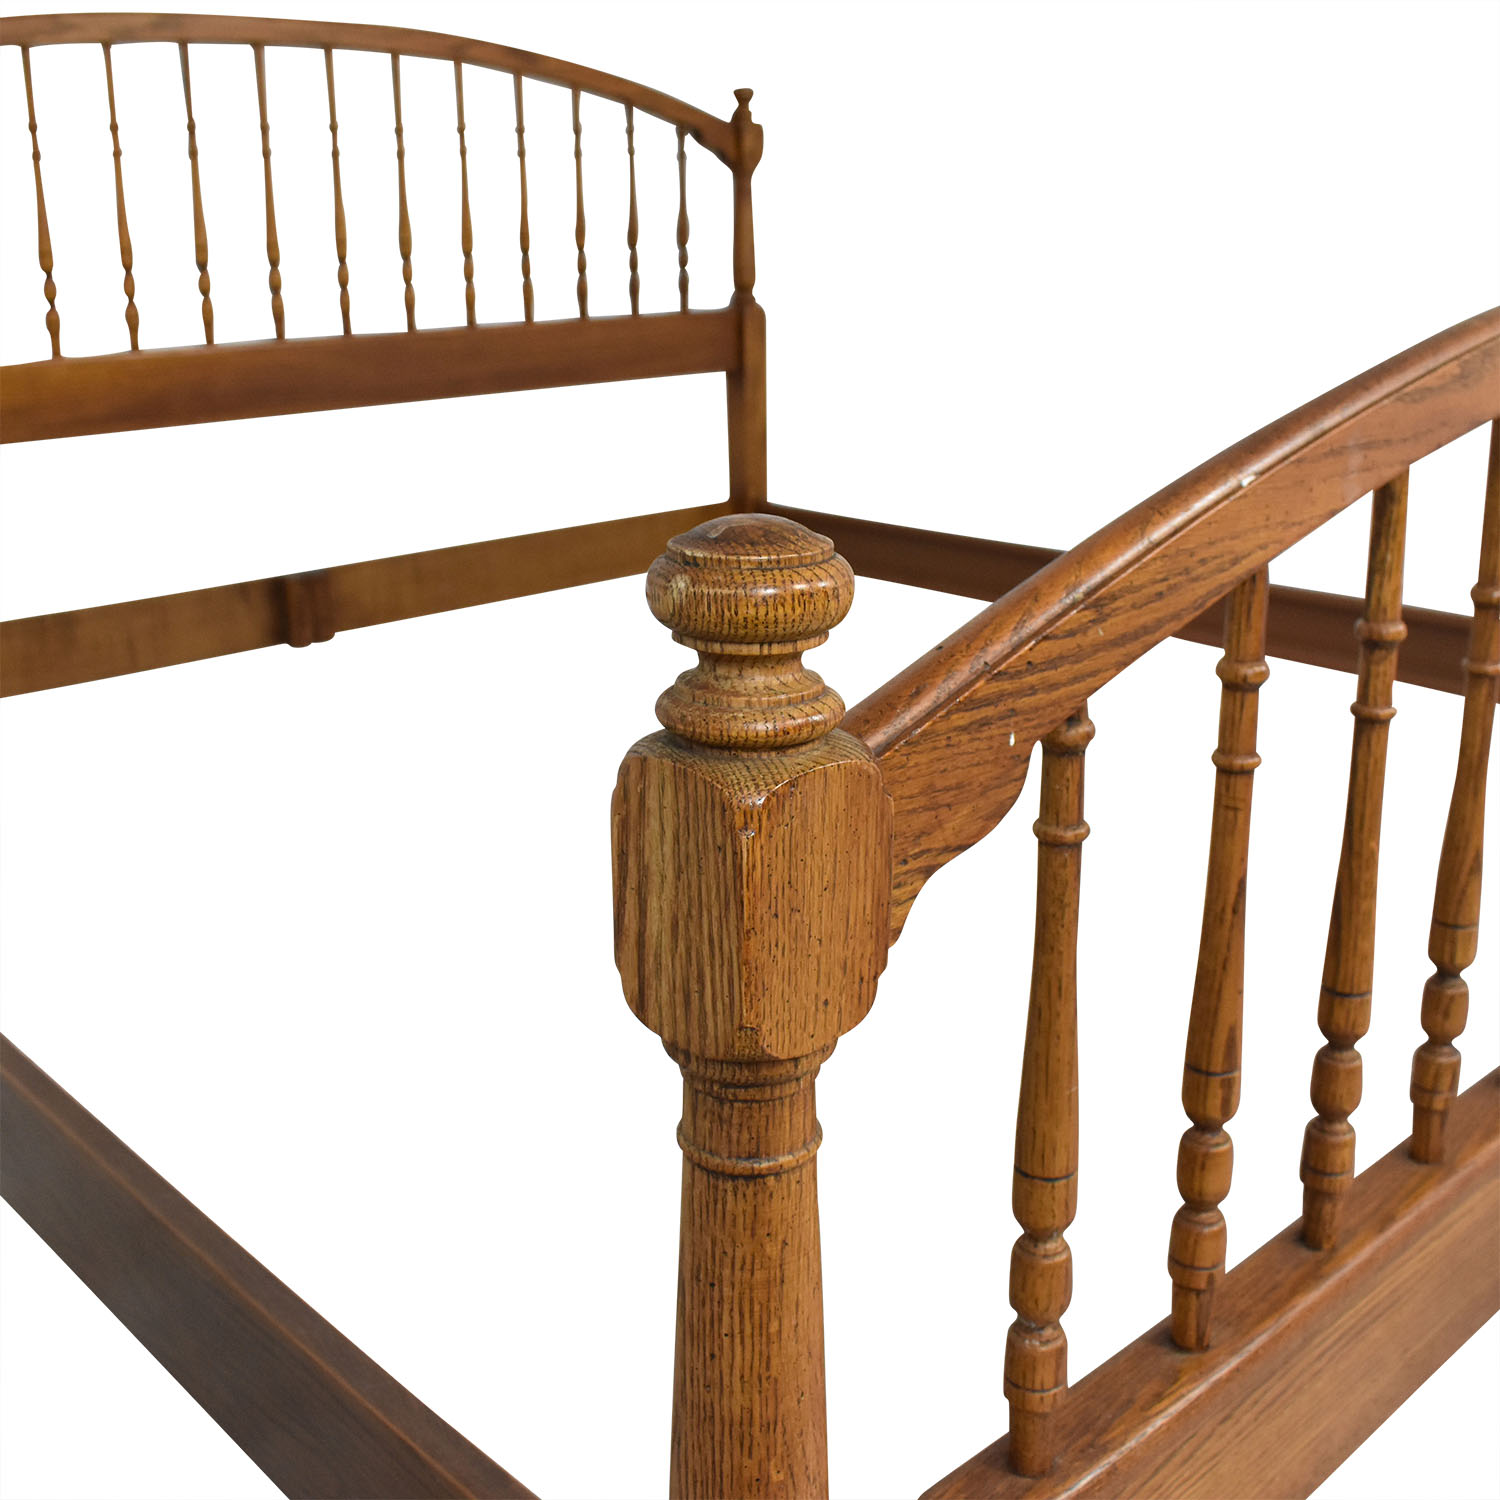 buy Knob Creek Knob Creek Spindle King Bed Frame online